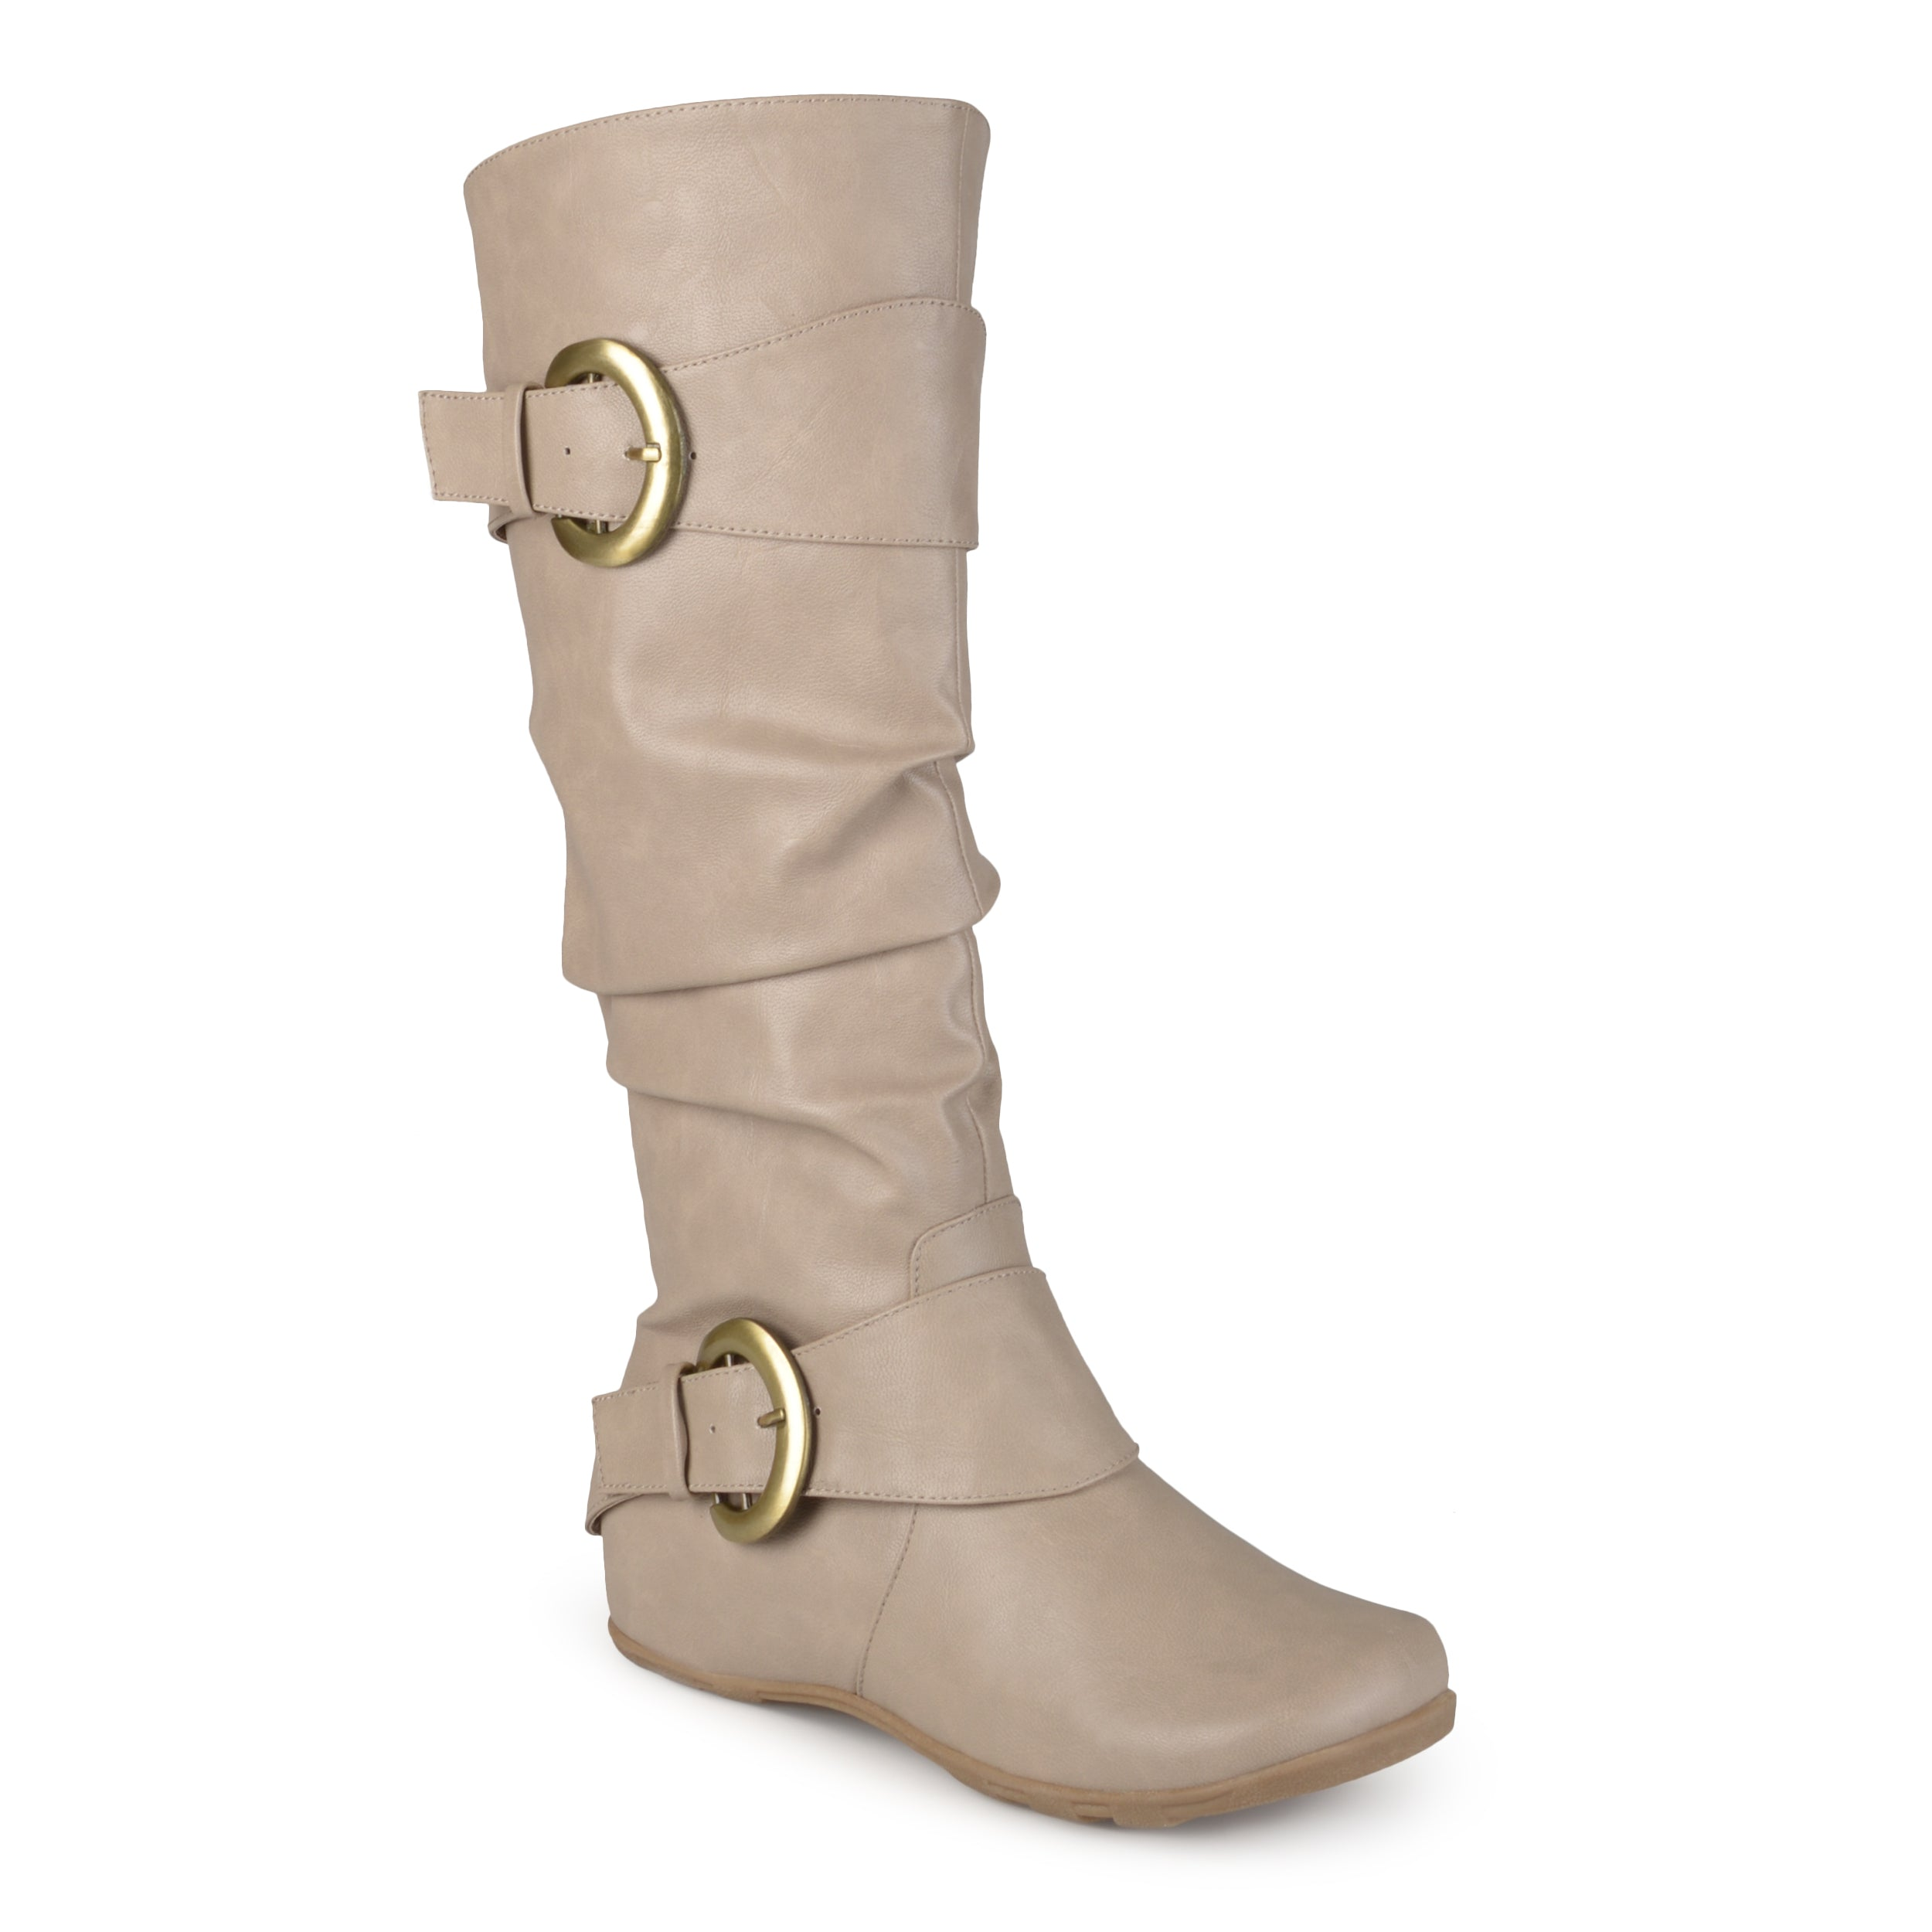 3b0795f195a Womens Buckle Knee-High Slouch Boot In Regular and Wide-Calf Sizes